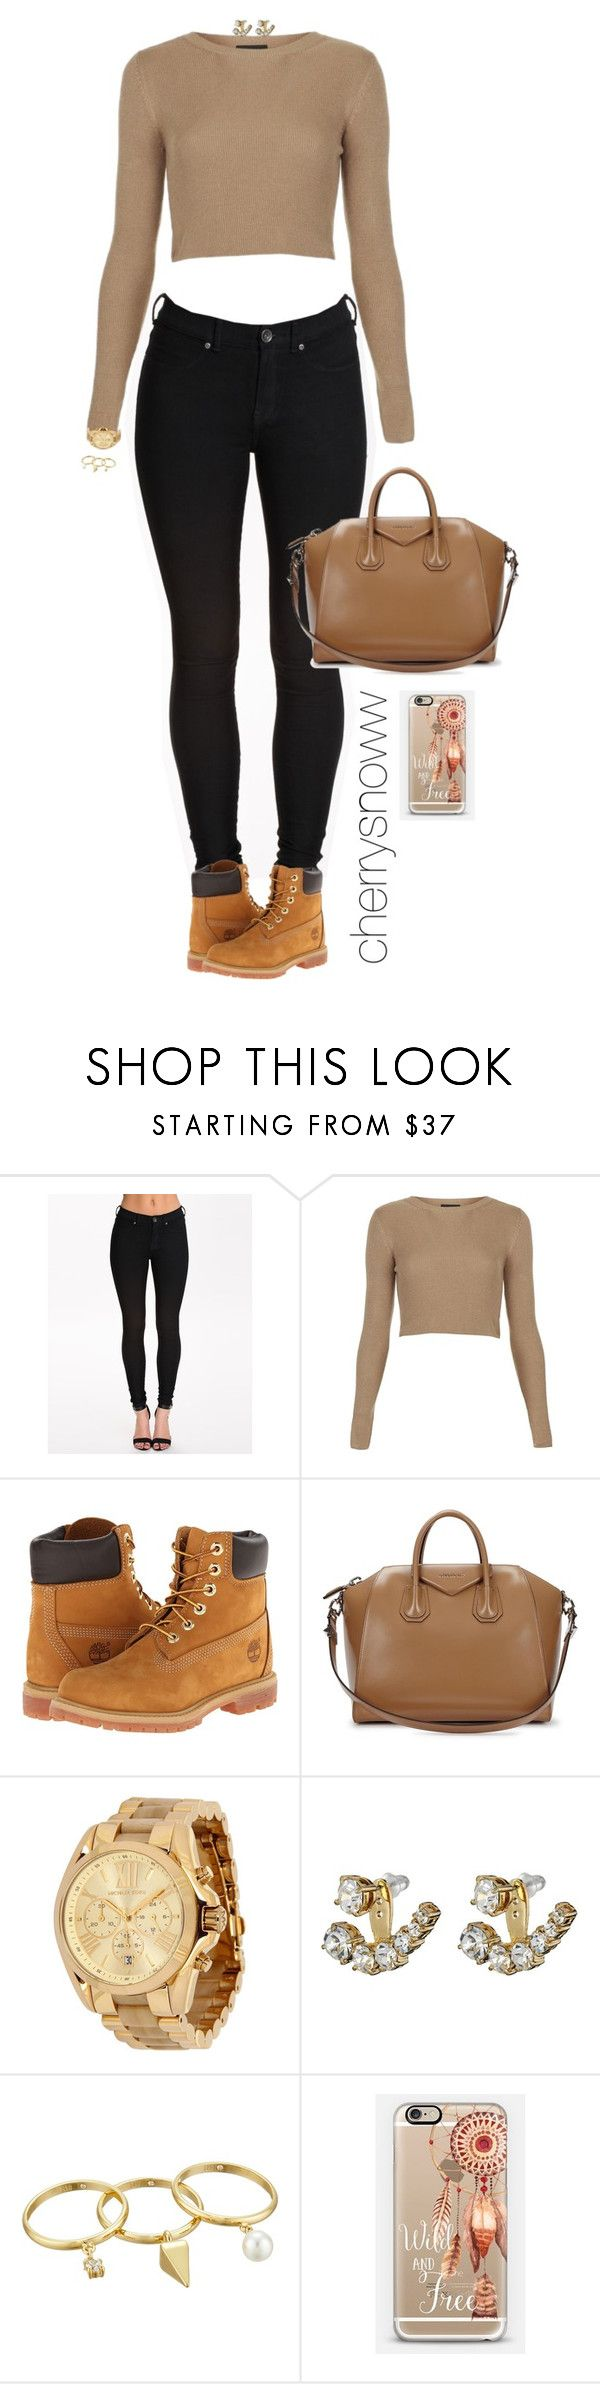 """""""Black and beige casual chic swag fall outfit"""" by cherrysnoww ❤ liked on Polyvore featuring Dr. Denim, Topshop, Timberland, Givenchy, Michael Kors, Kate Spade, Rebecca Minkoff and Casetify"""